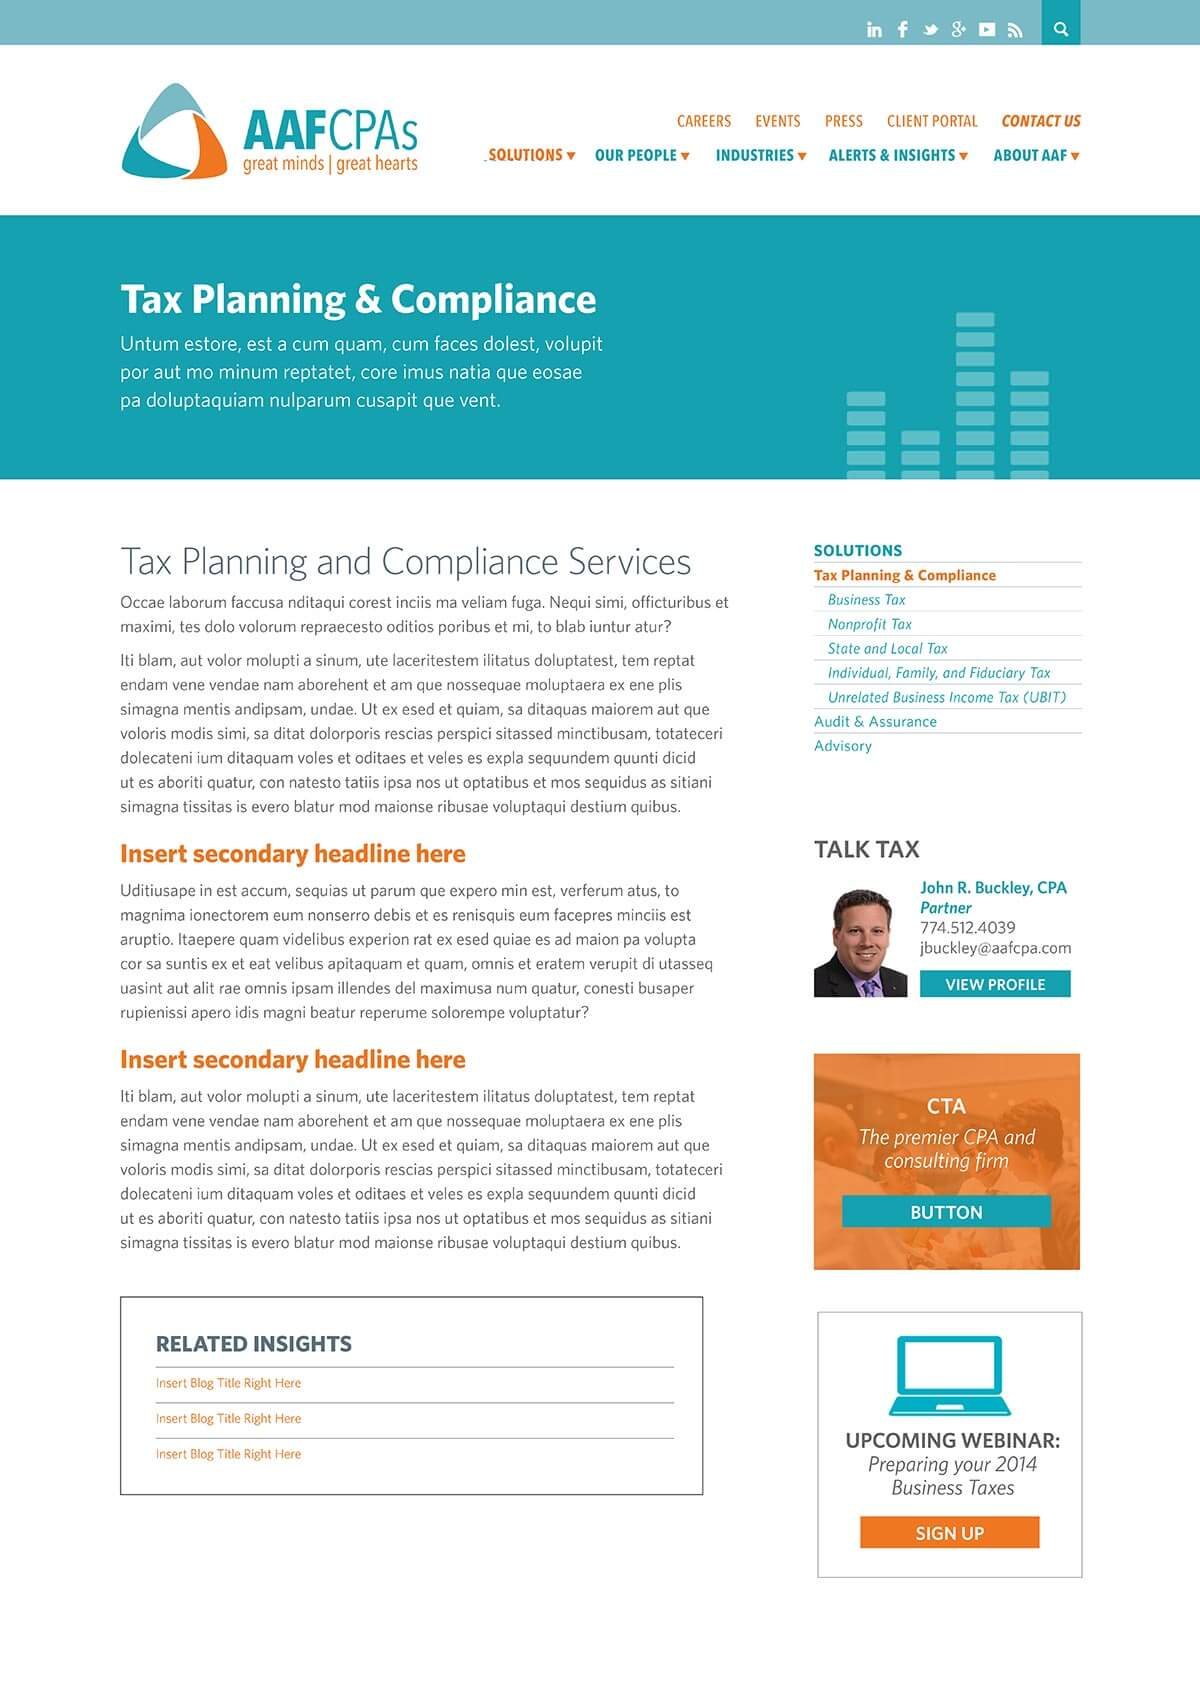 AAFCPAs tax planning and compliance page